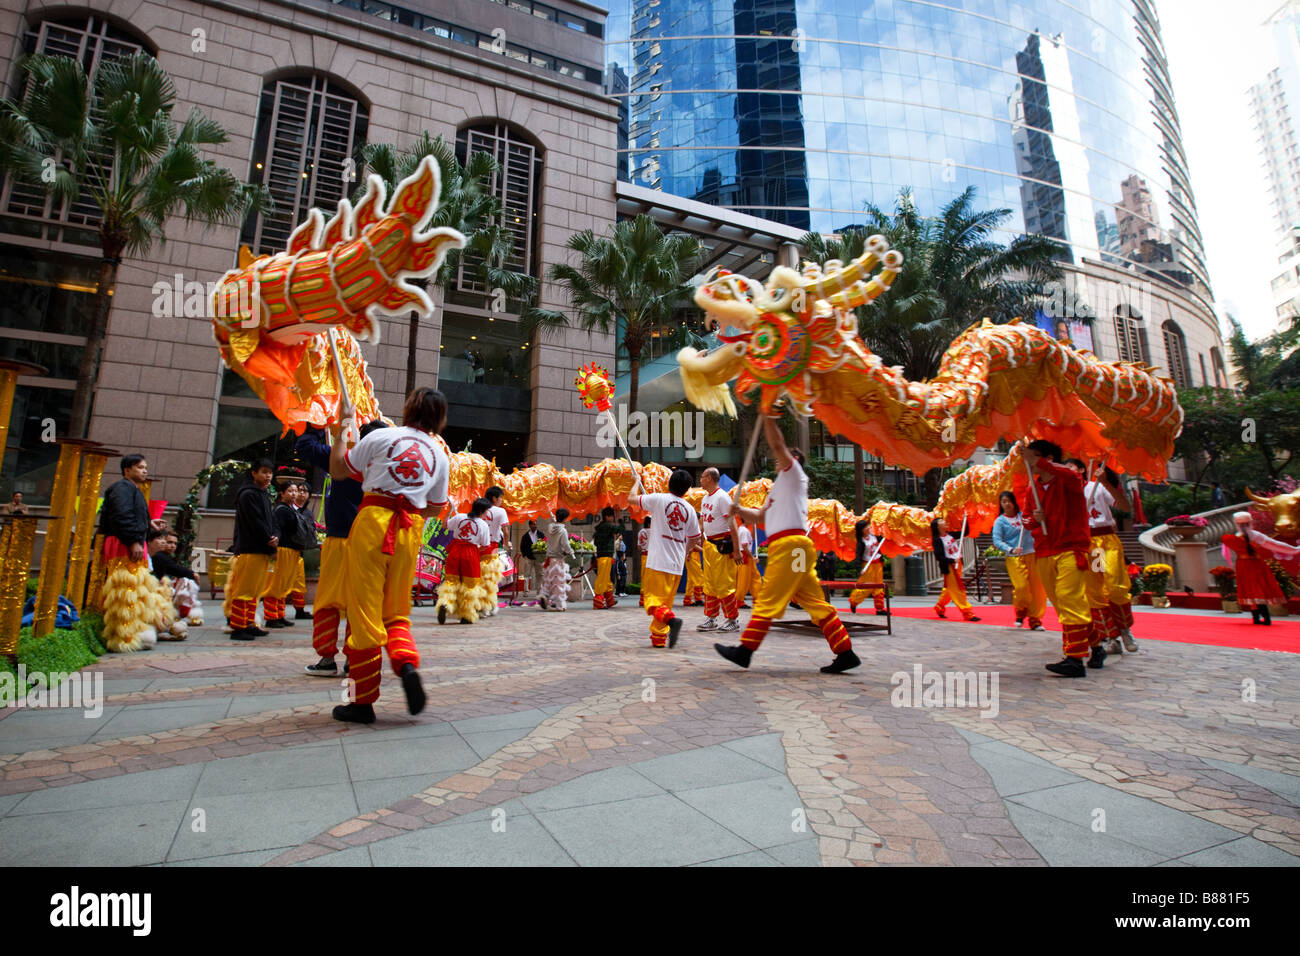 Uncategorized Chinese New Year Dance chinese dragon dance to celebrate the lunar new year in central hong kong